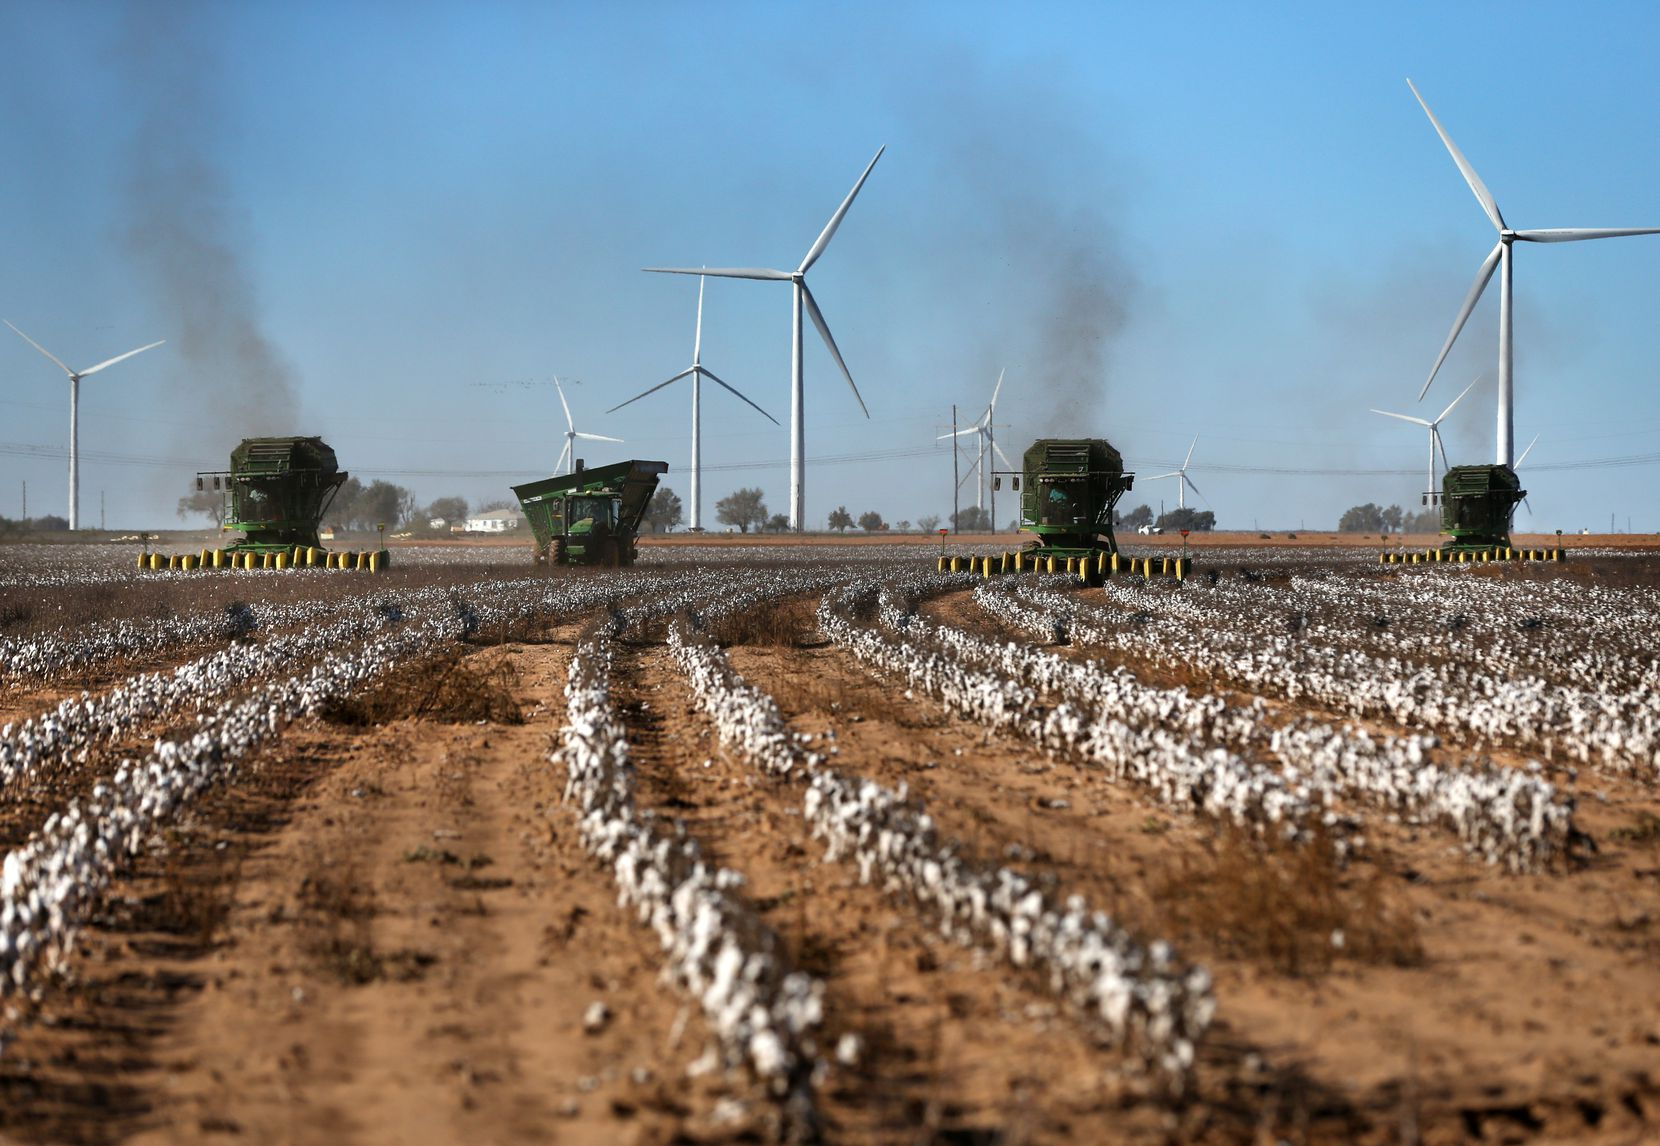 Cotton harvesters pick bolls from lines of cotton on Matt Farmer's farm in Lynn County south of Lubbock.